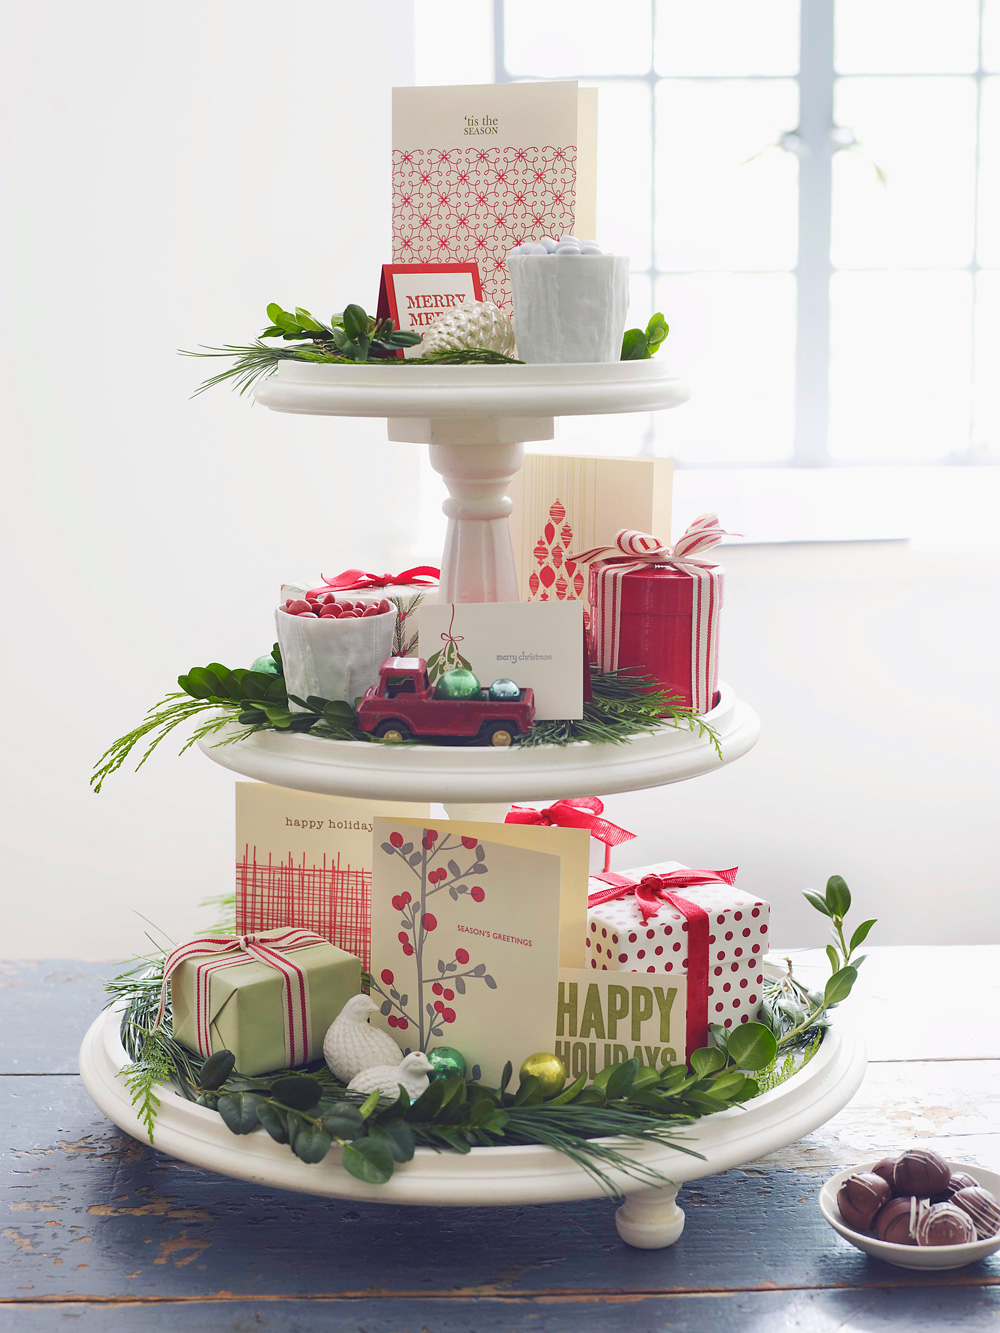 Holiday tiers